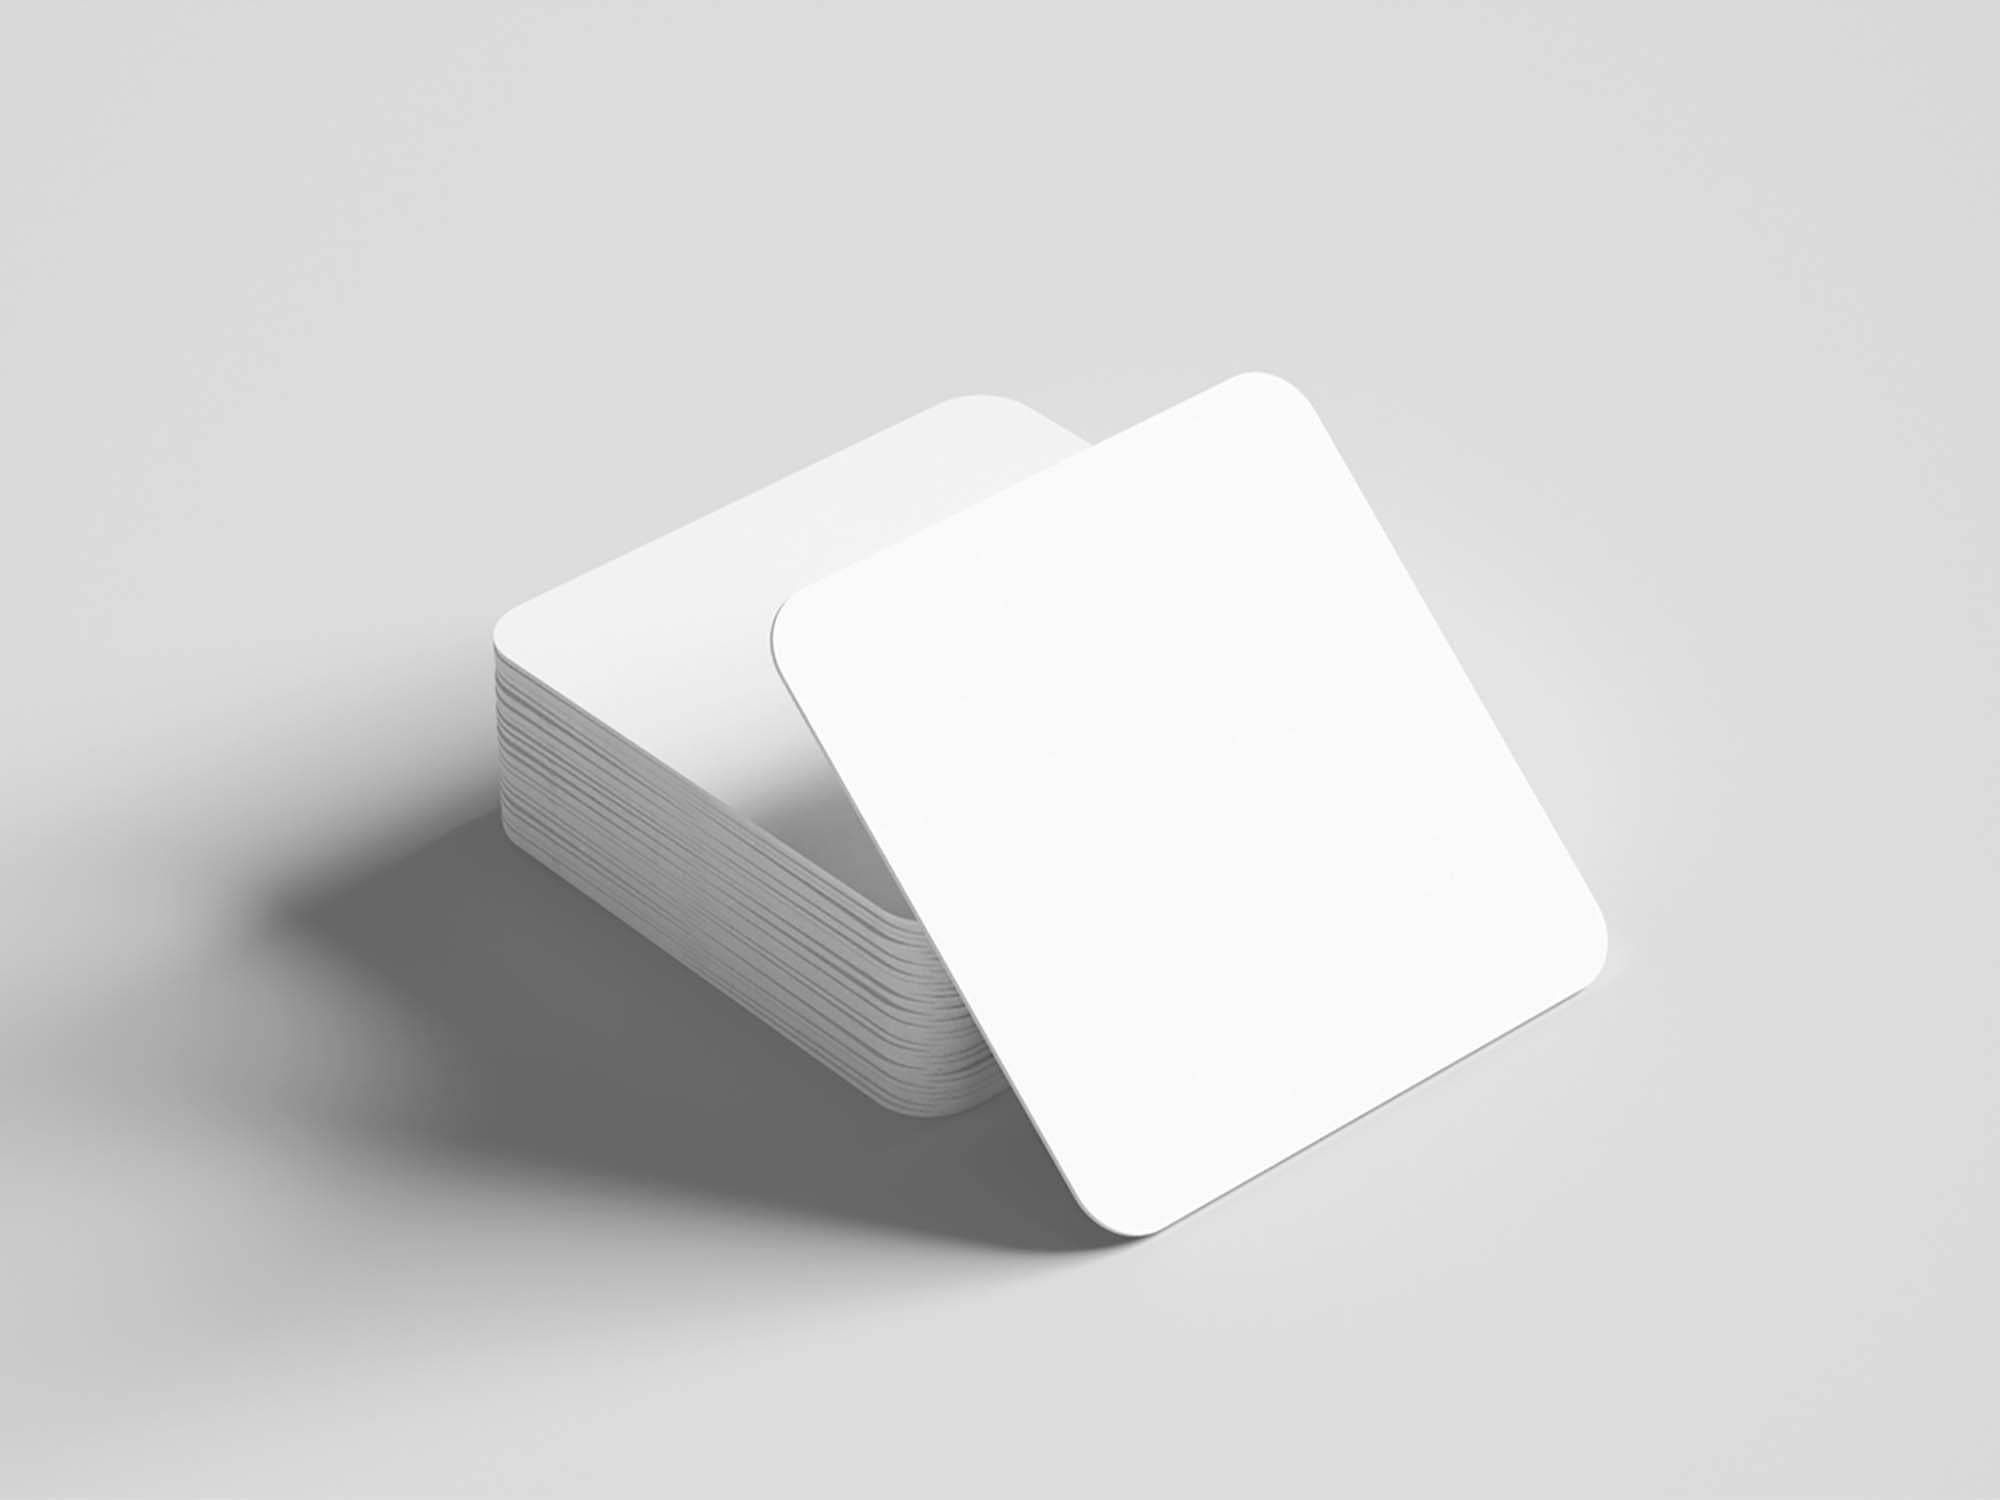 Drinks Coaster Mockup 2